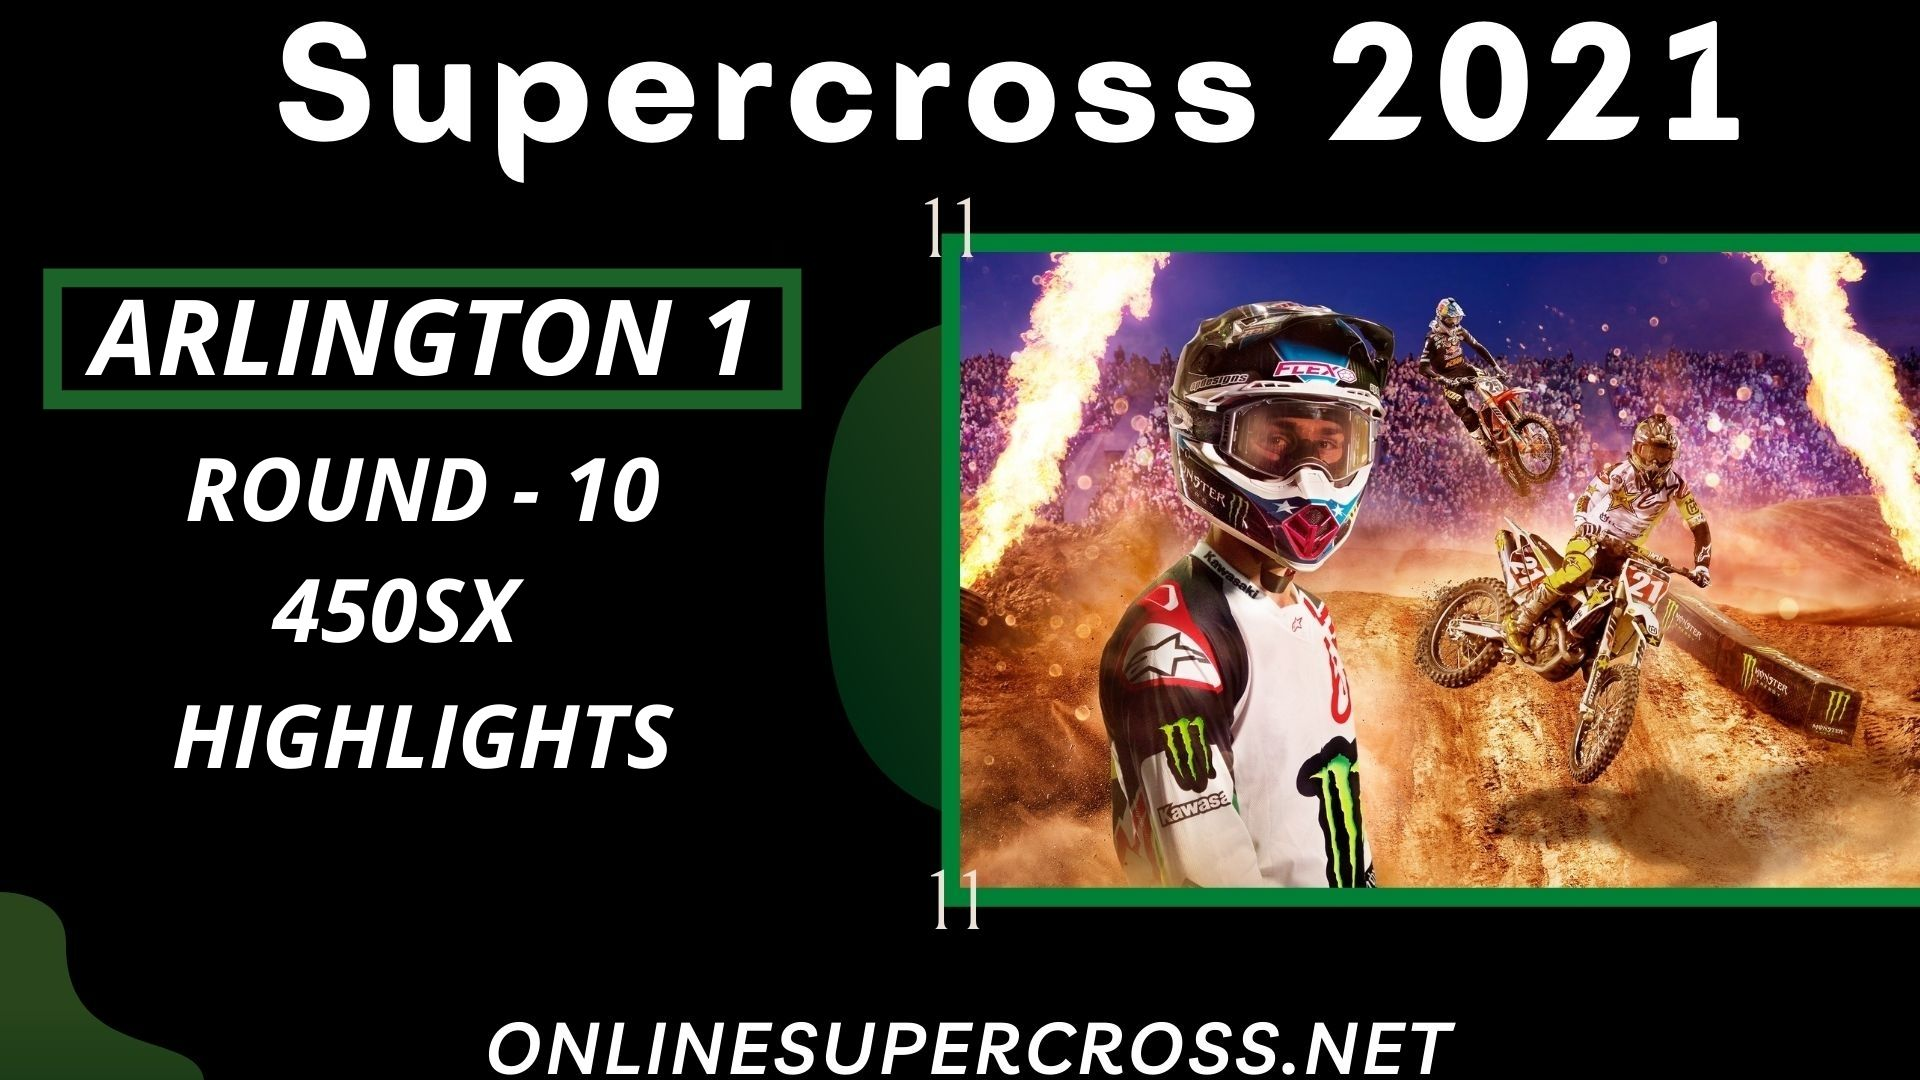 Arlington 1 Round 10 Supercross 450SX Highlights 2021